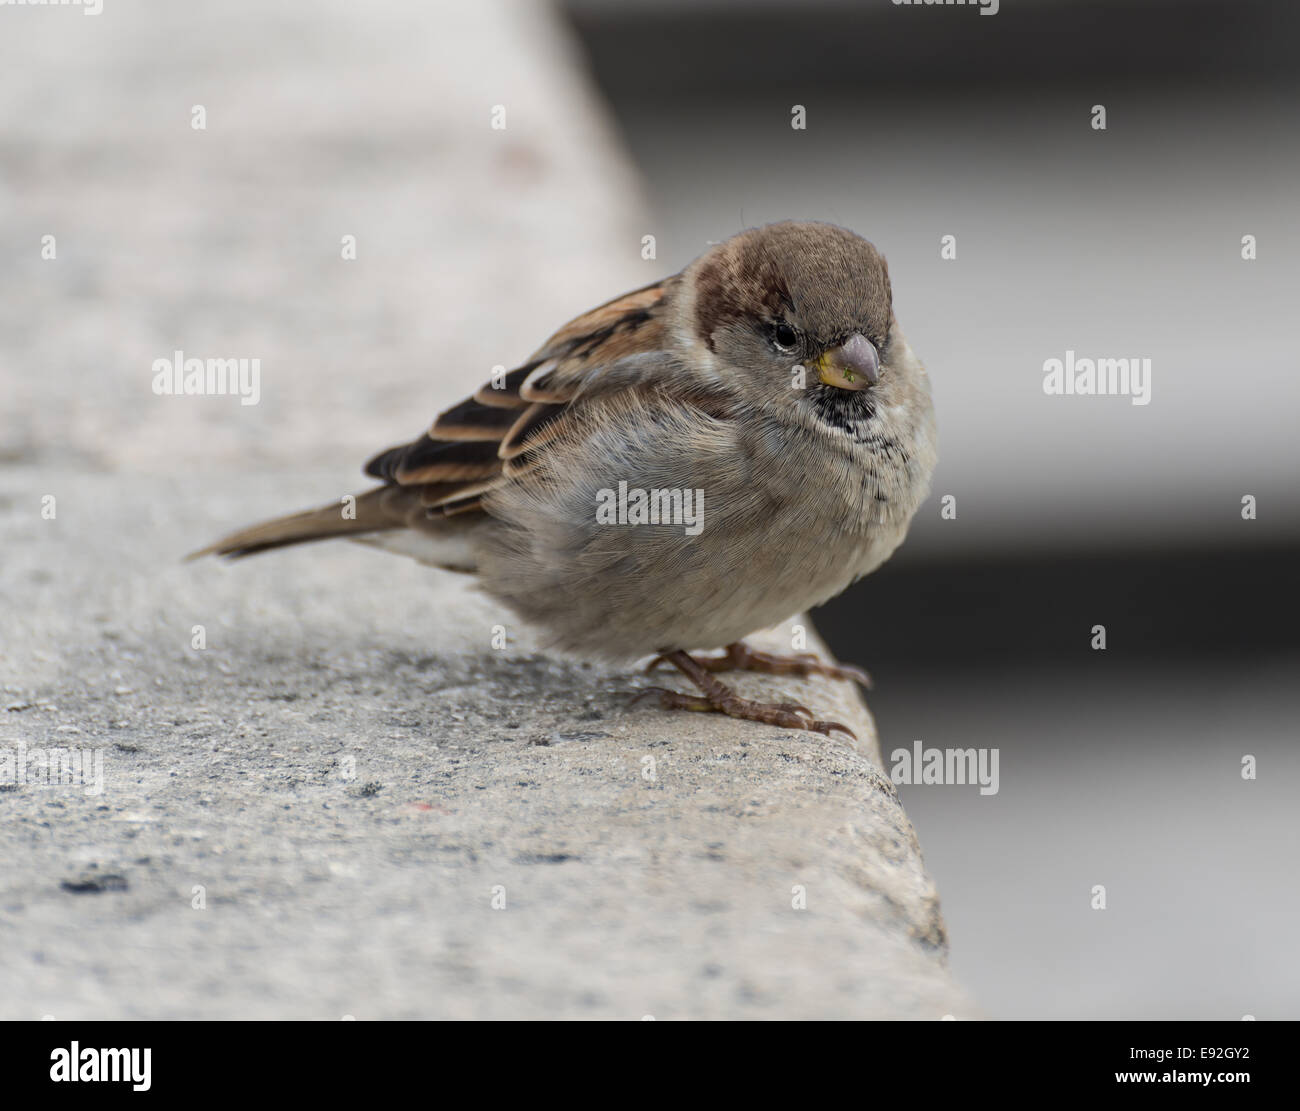 A lone sparrow sits patiently for it's next meal. - Stock Image